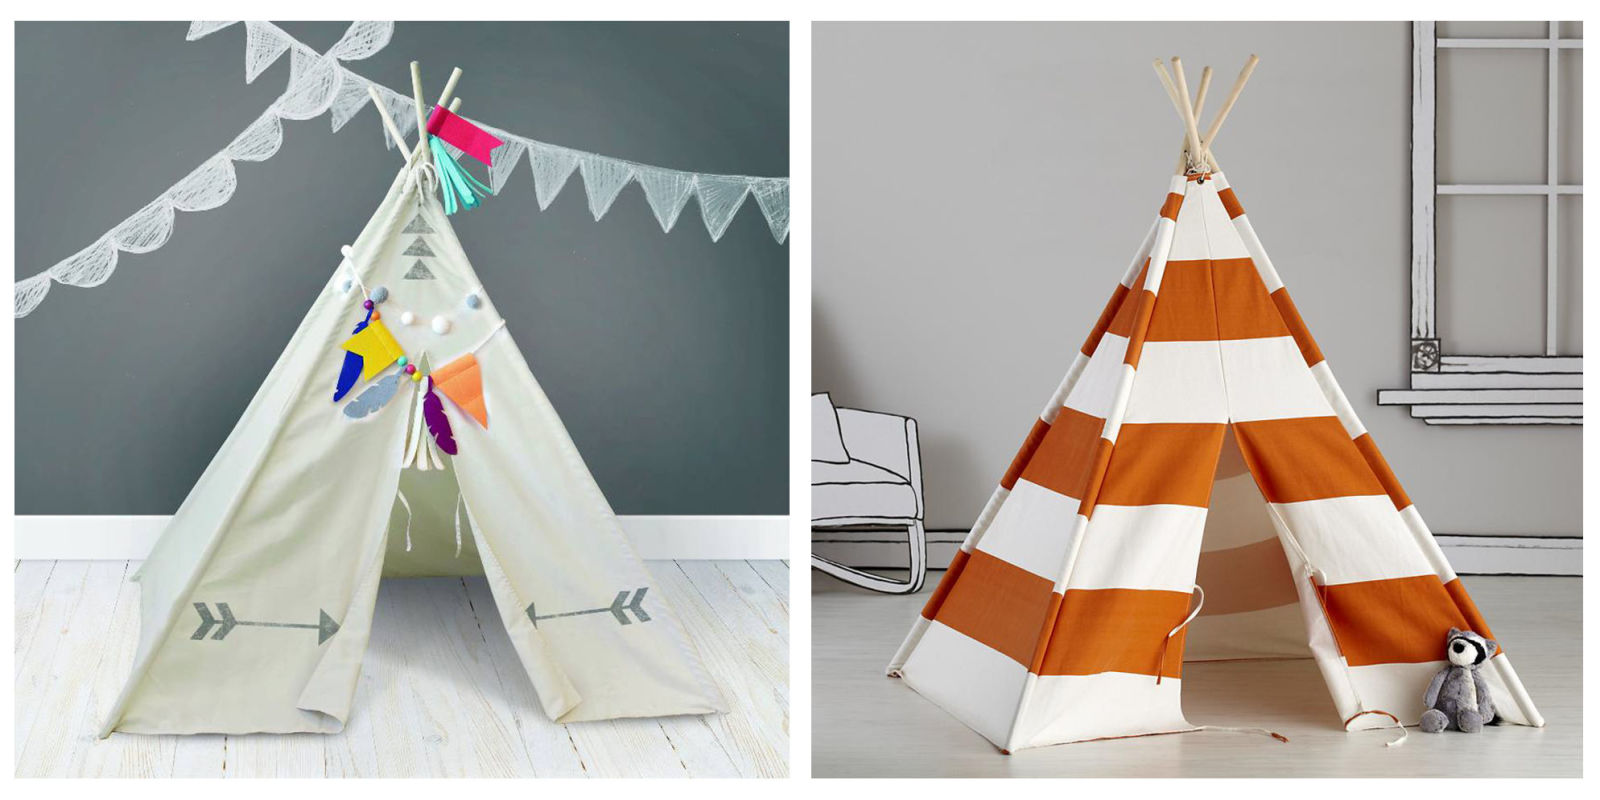 Design Teepee For Kids 15 best kids teepee tents of 2017 totally cool play teepees for kids